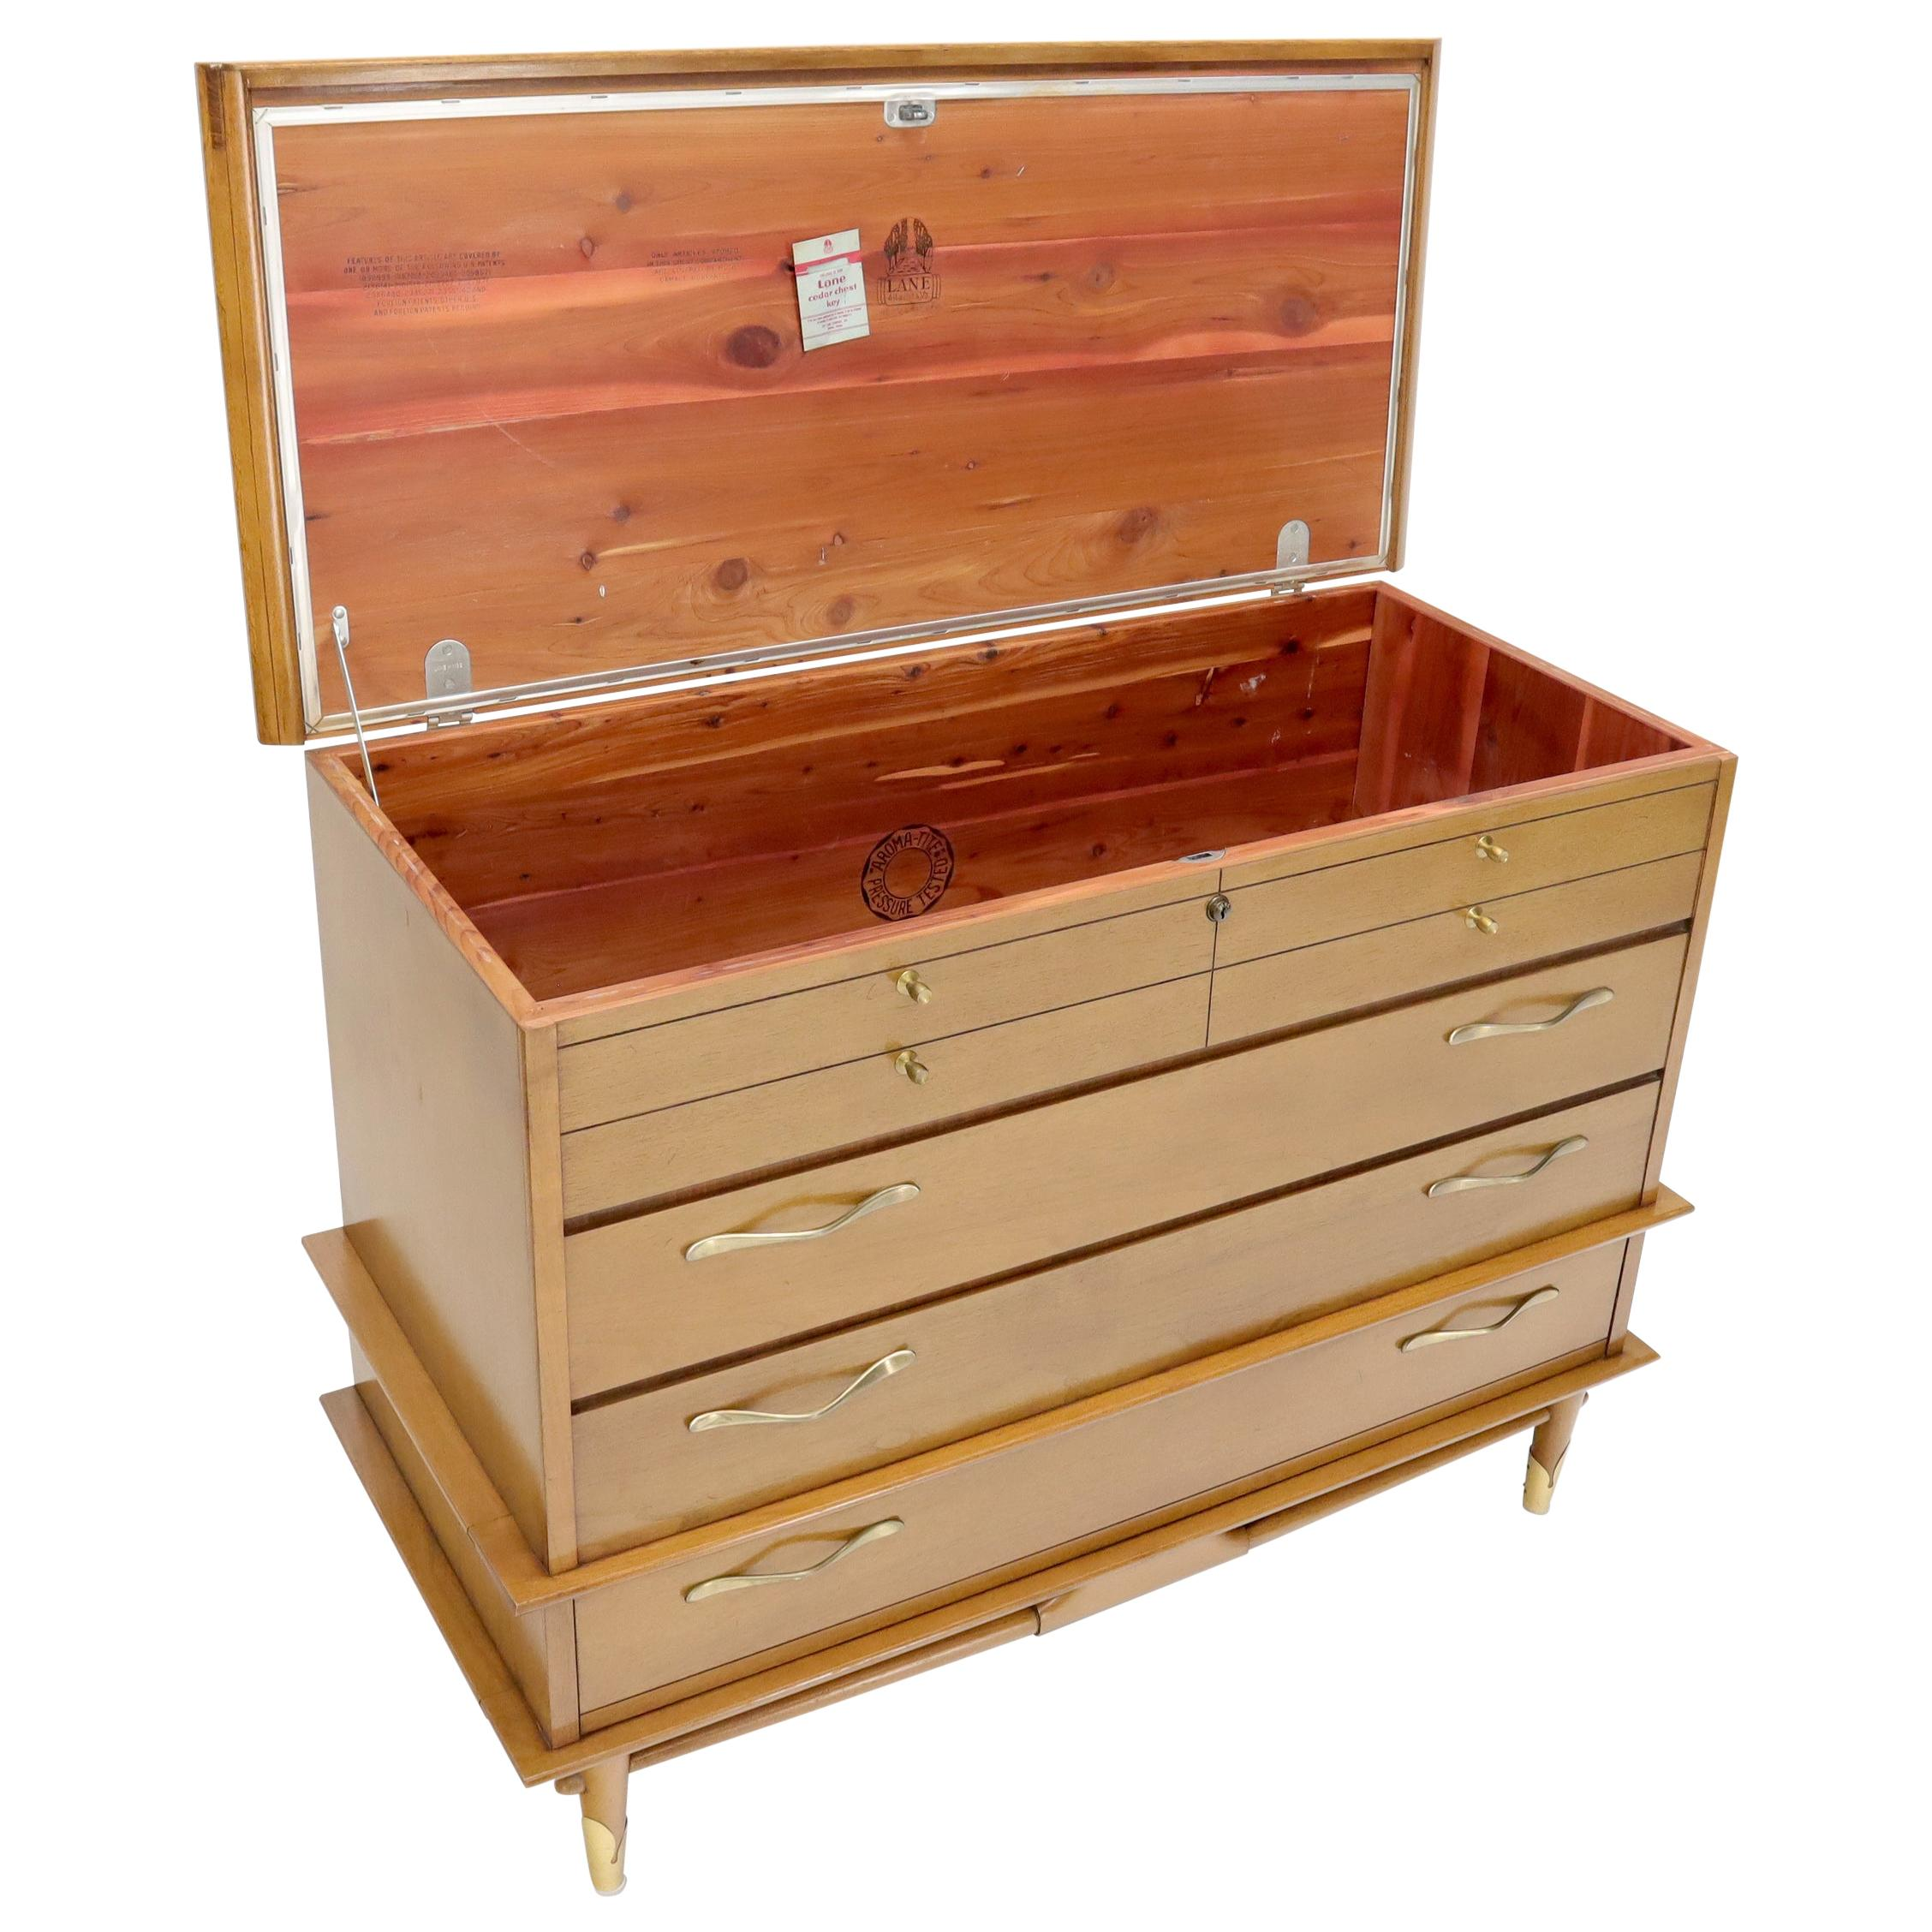 Midcentury Lane Cedar Hope Chest One Drawer Dresser